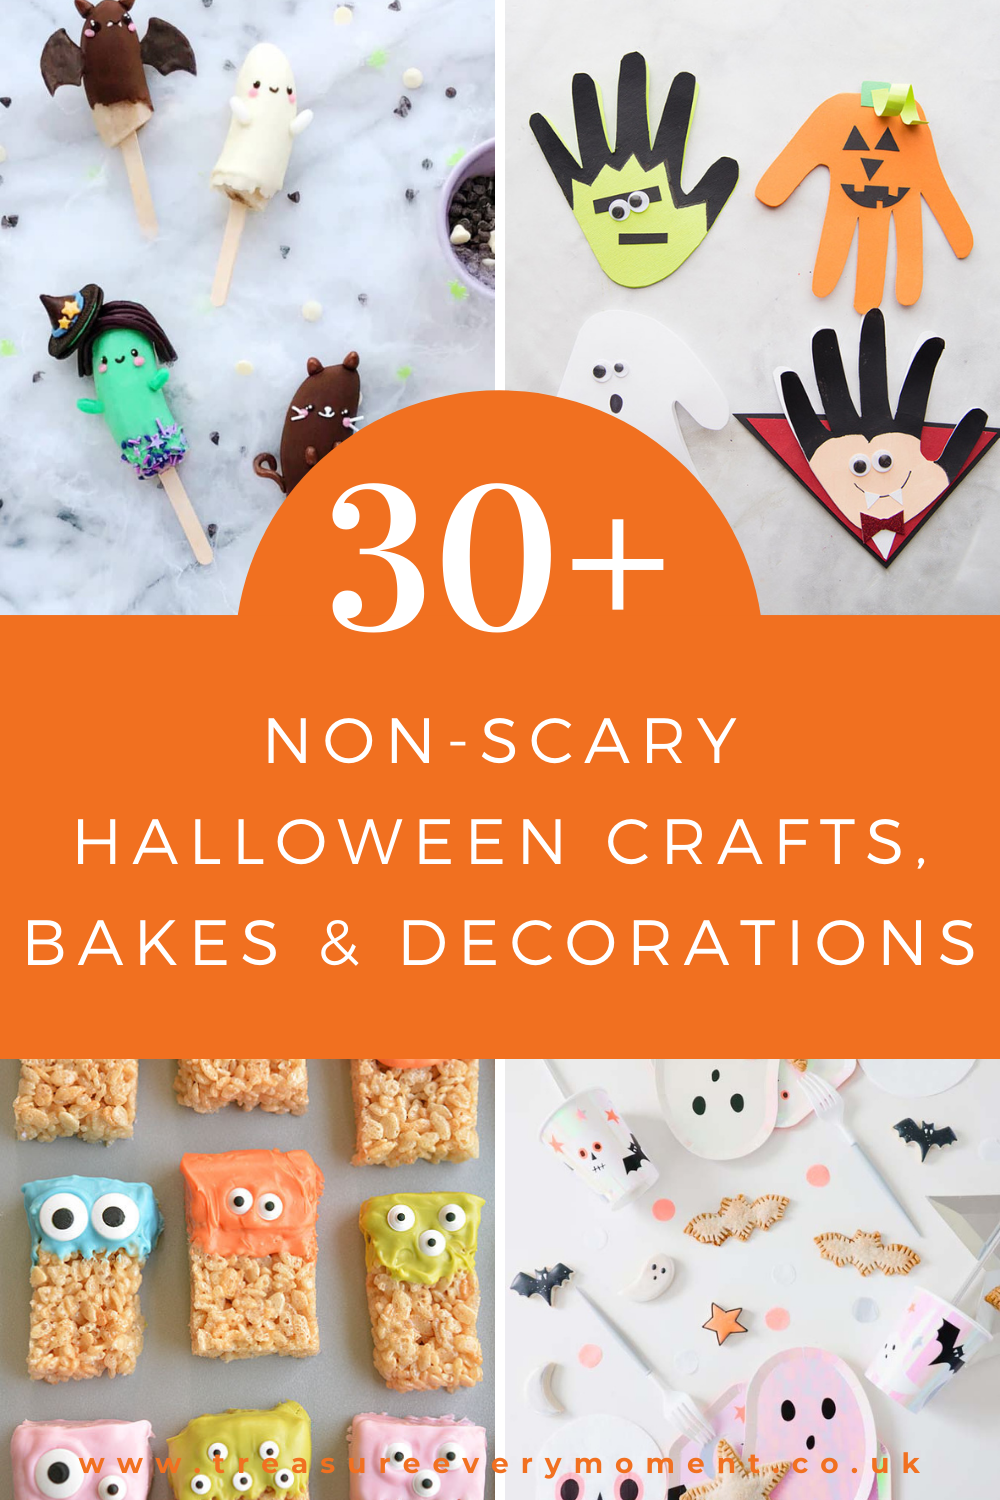 HALLOWEEN: 30+ Non-Scary Crafts, Bakes and Decorations